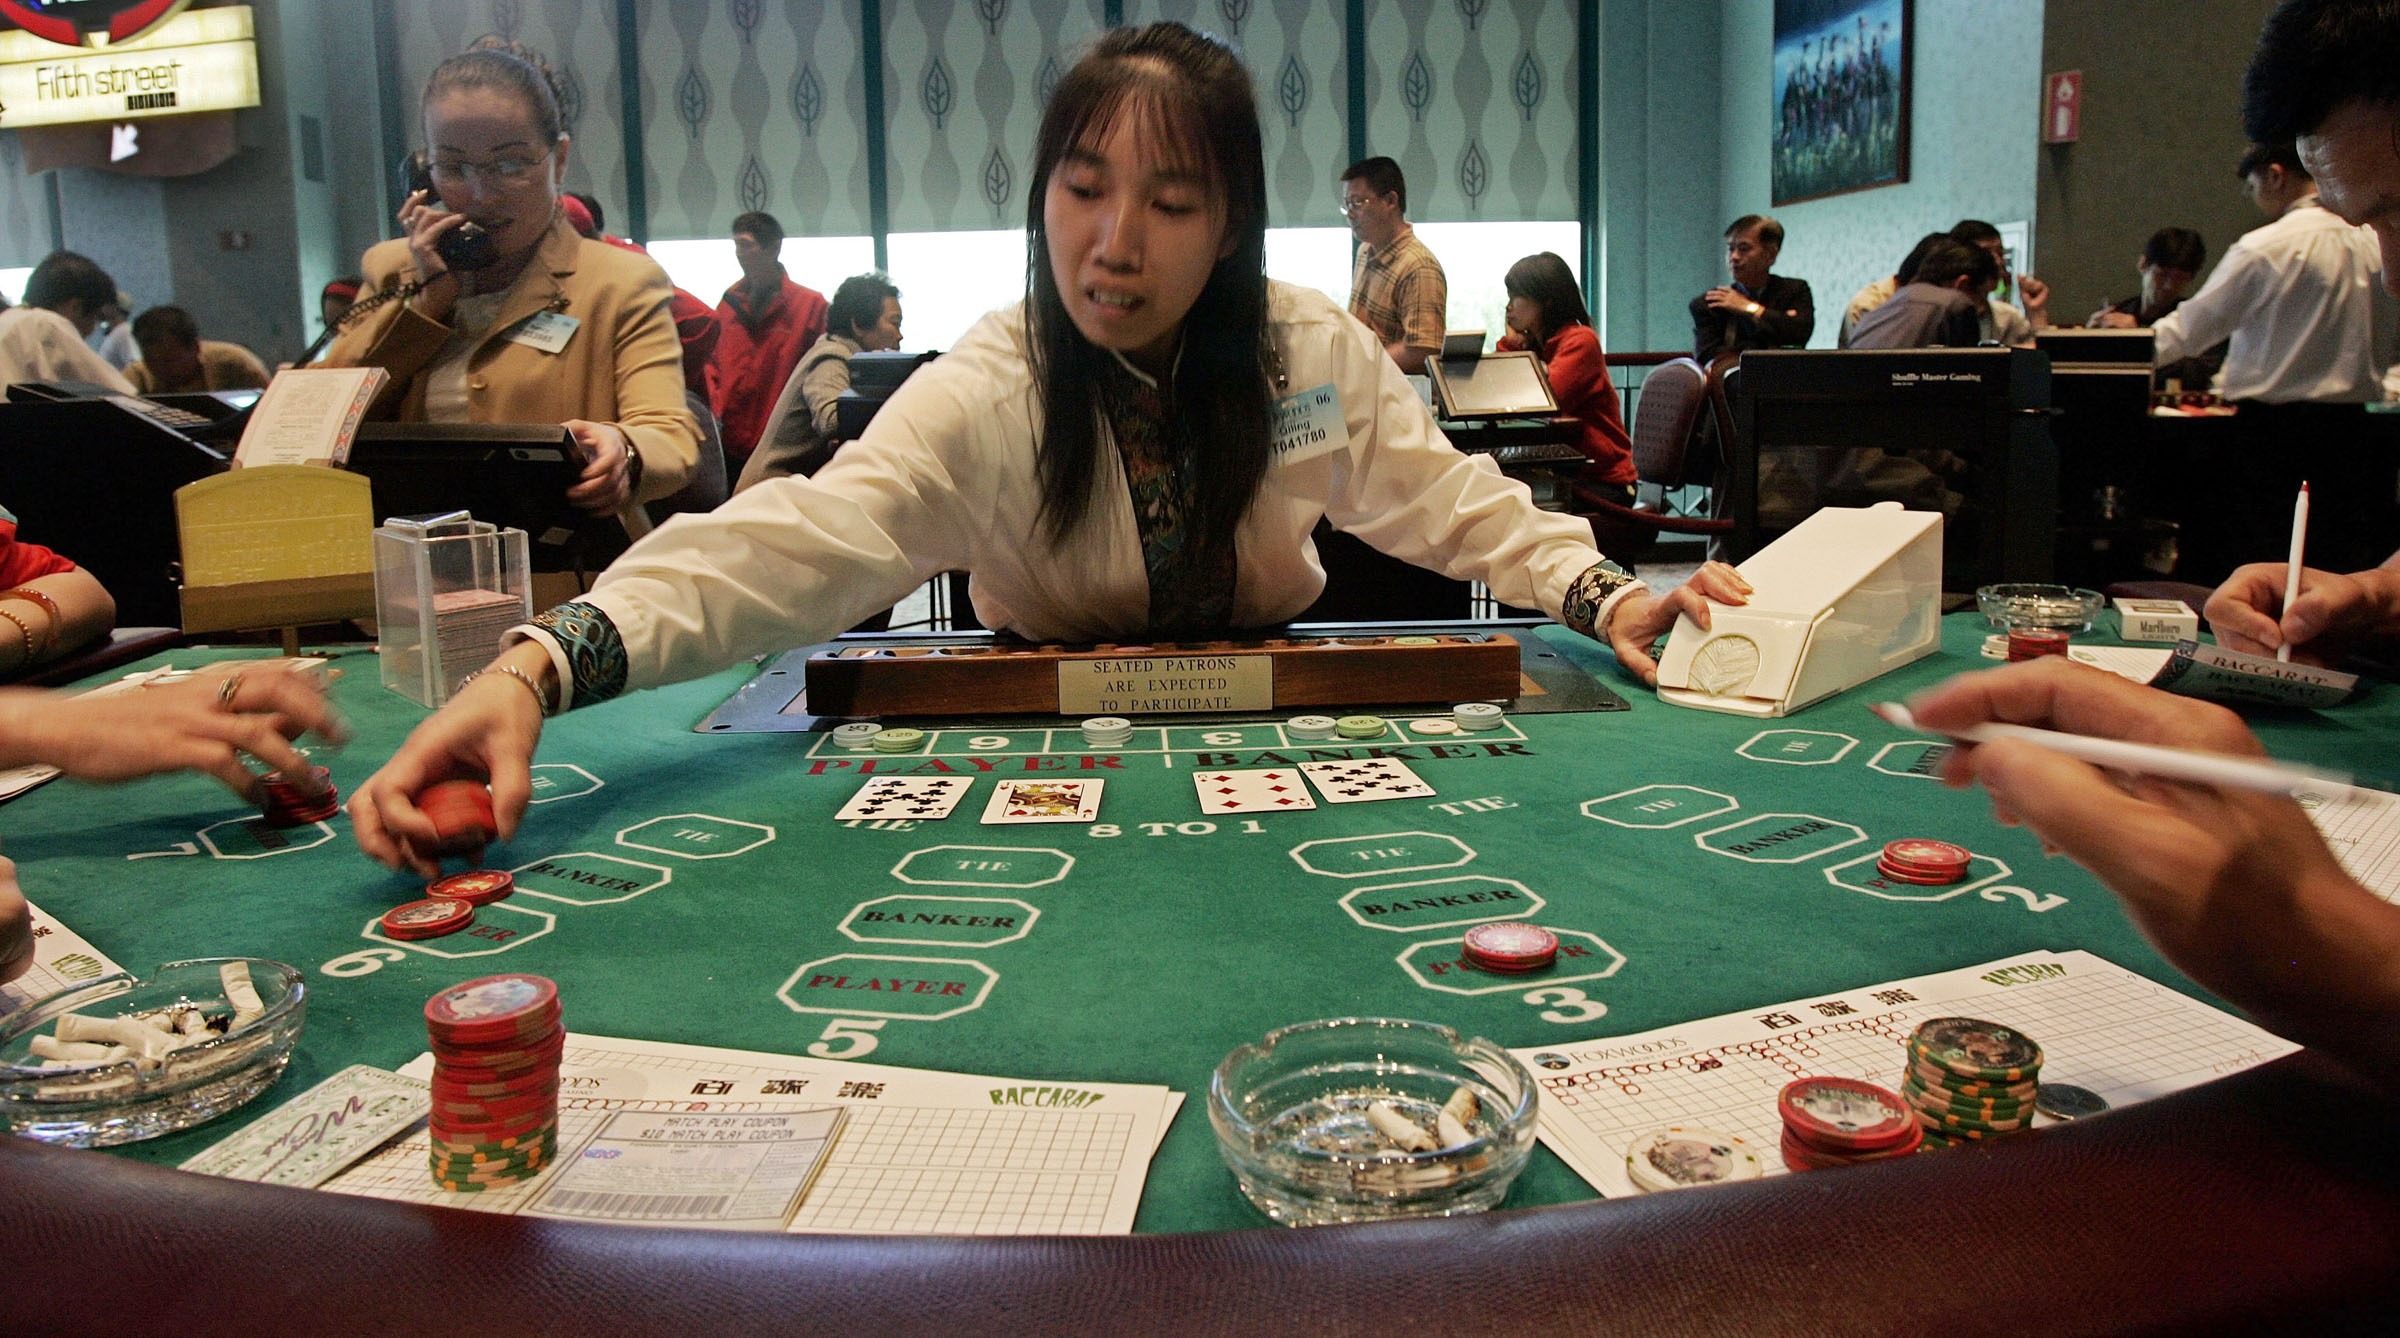 Smart cards do play a major role in casino gaming